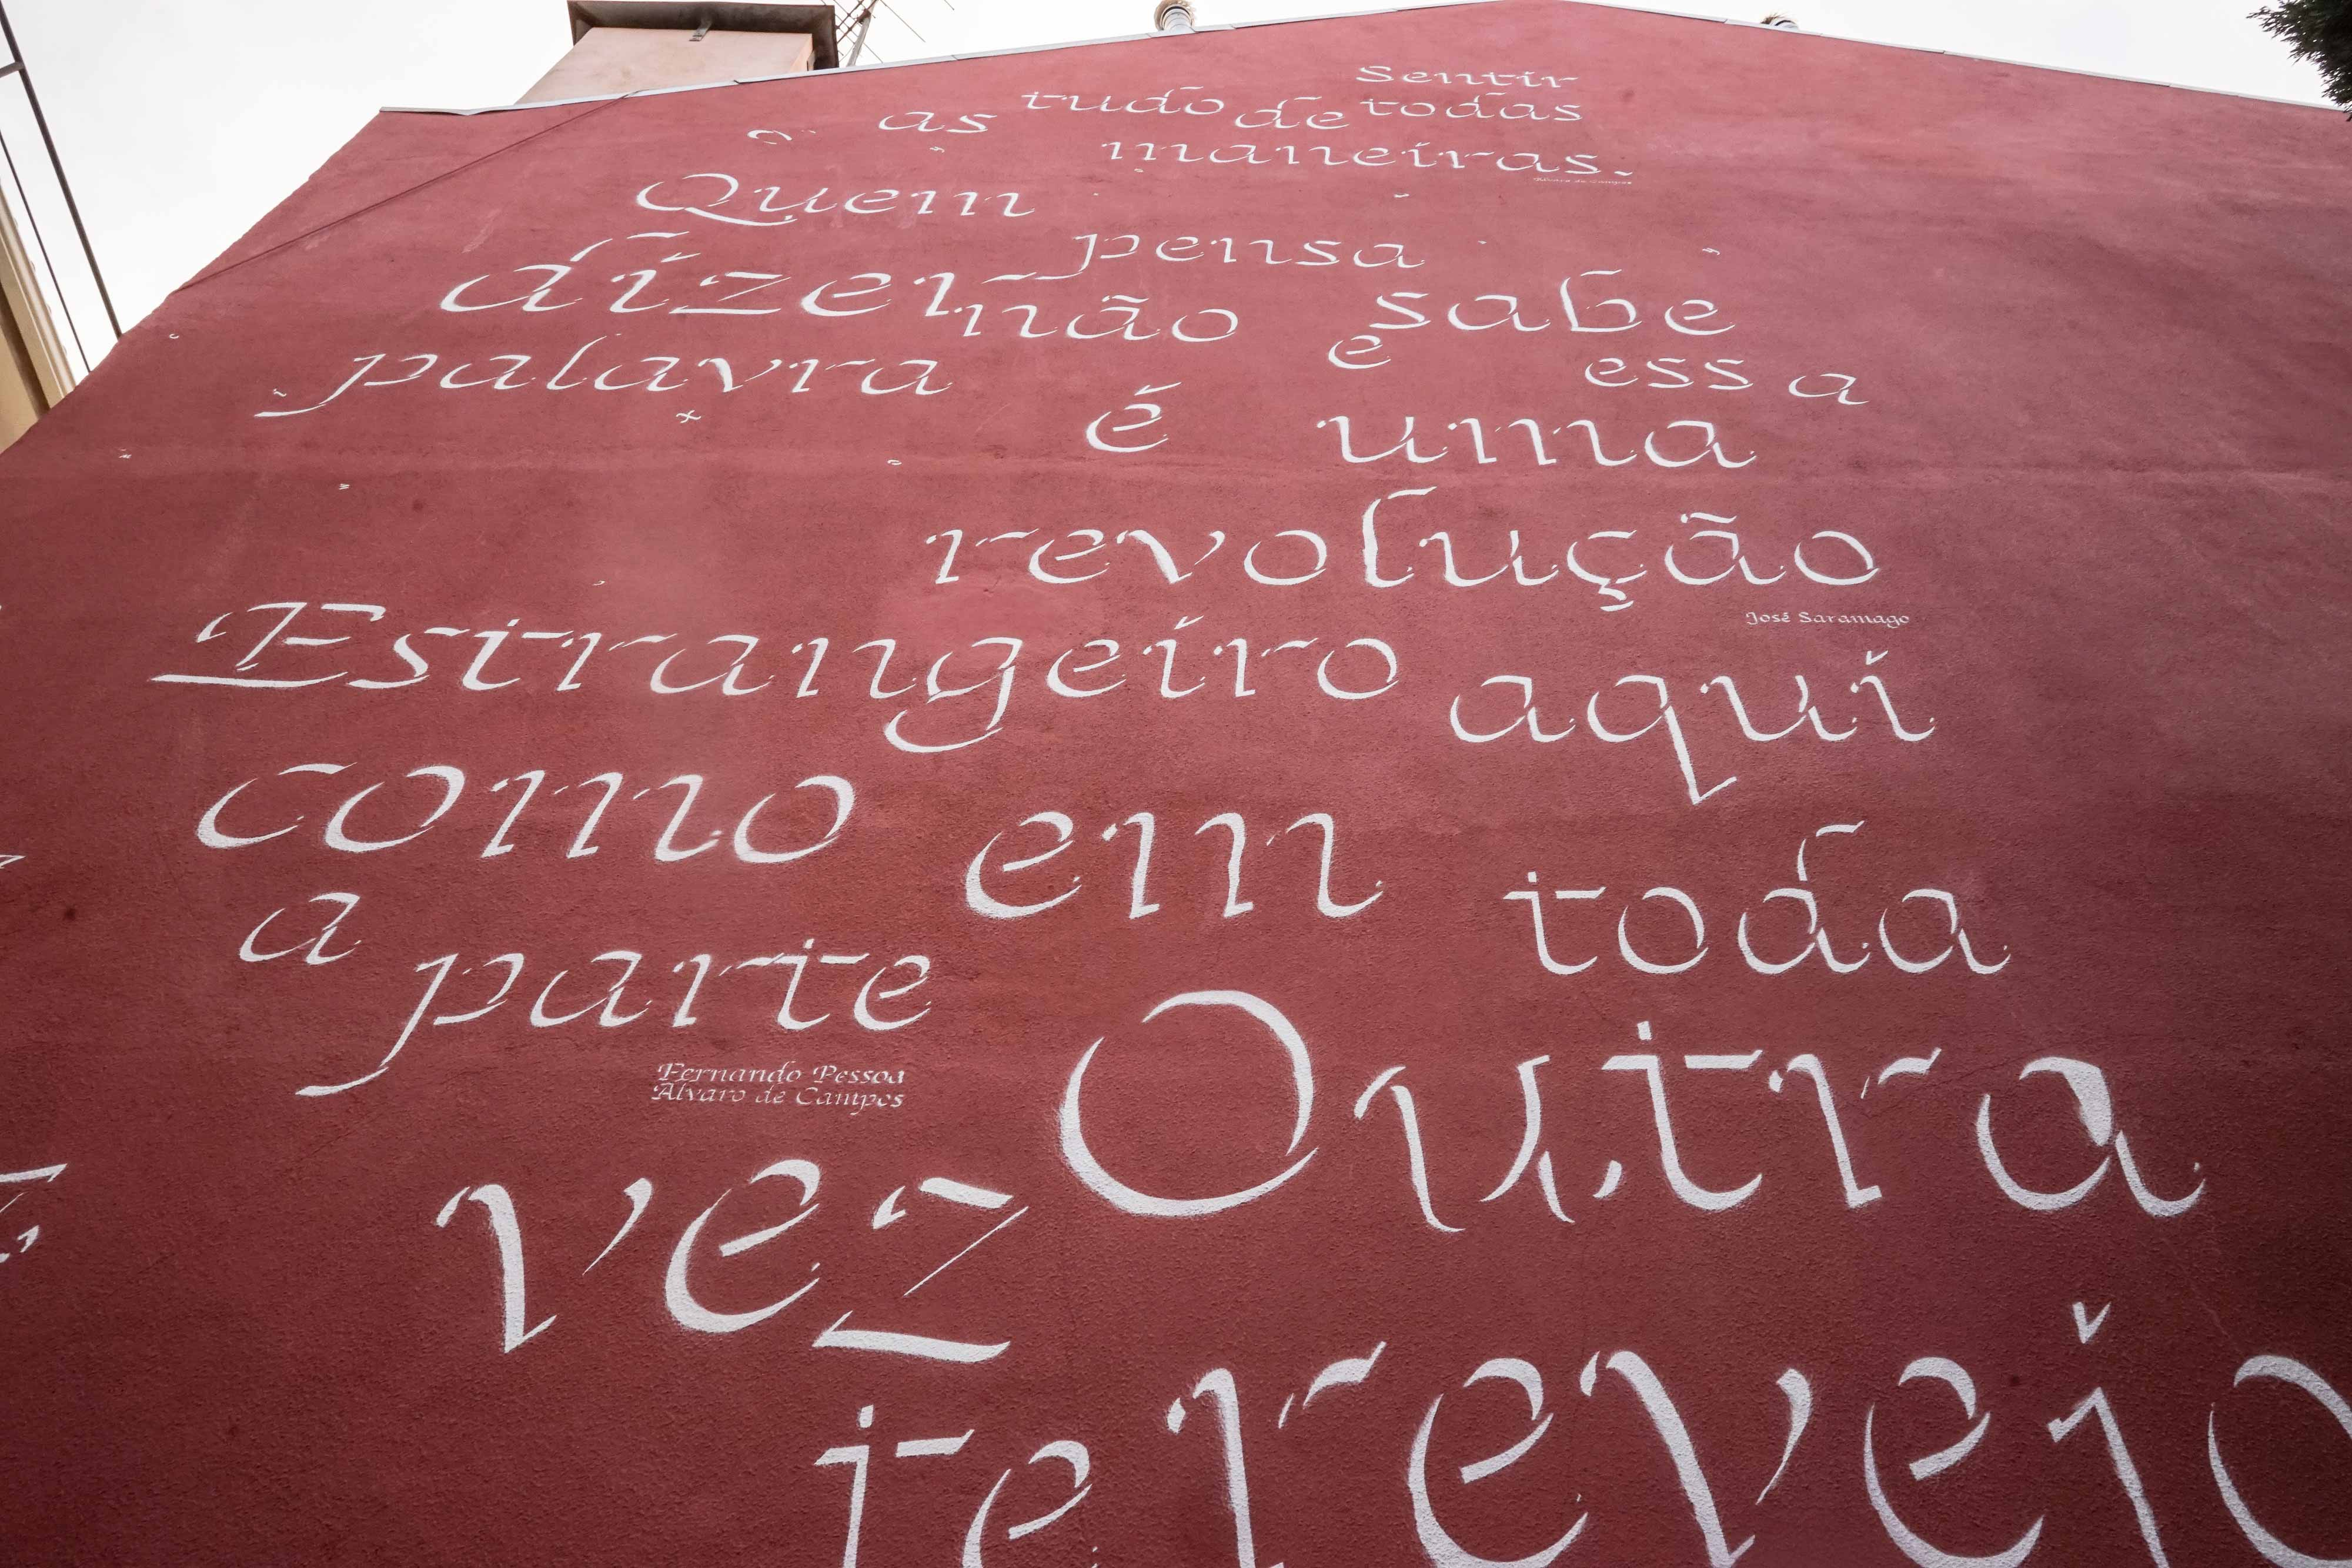 To Pessoa and Saramago: a poetry homage by Opiemme in Lisbon, Portugal. Artes & contextos Opiemme4